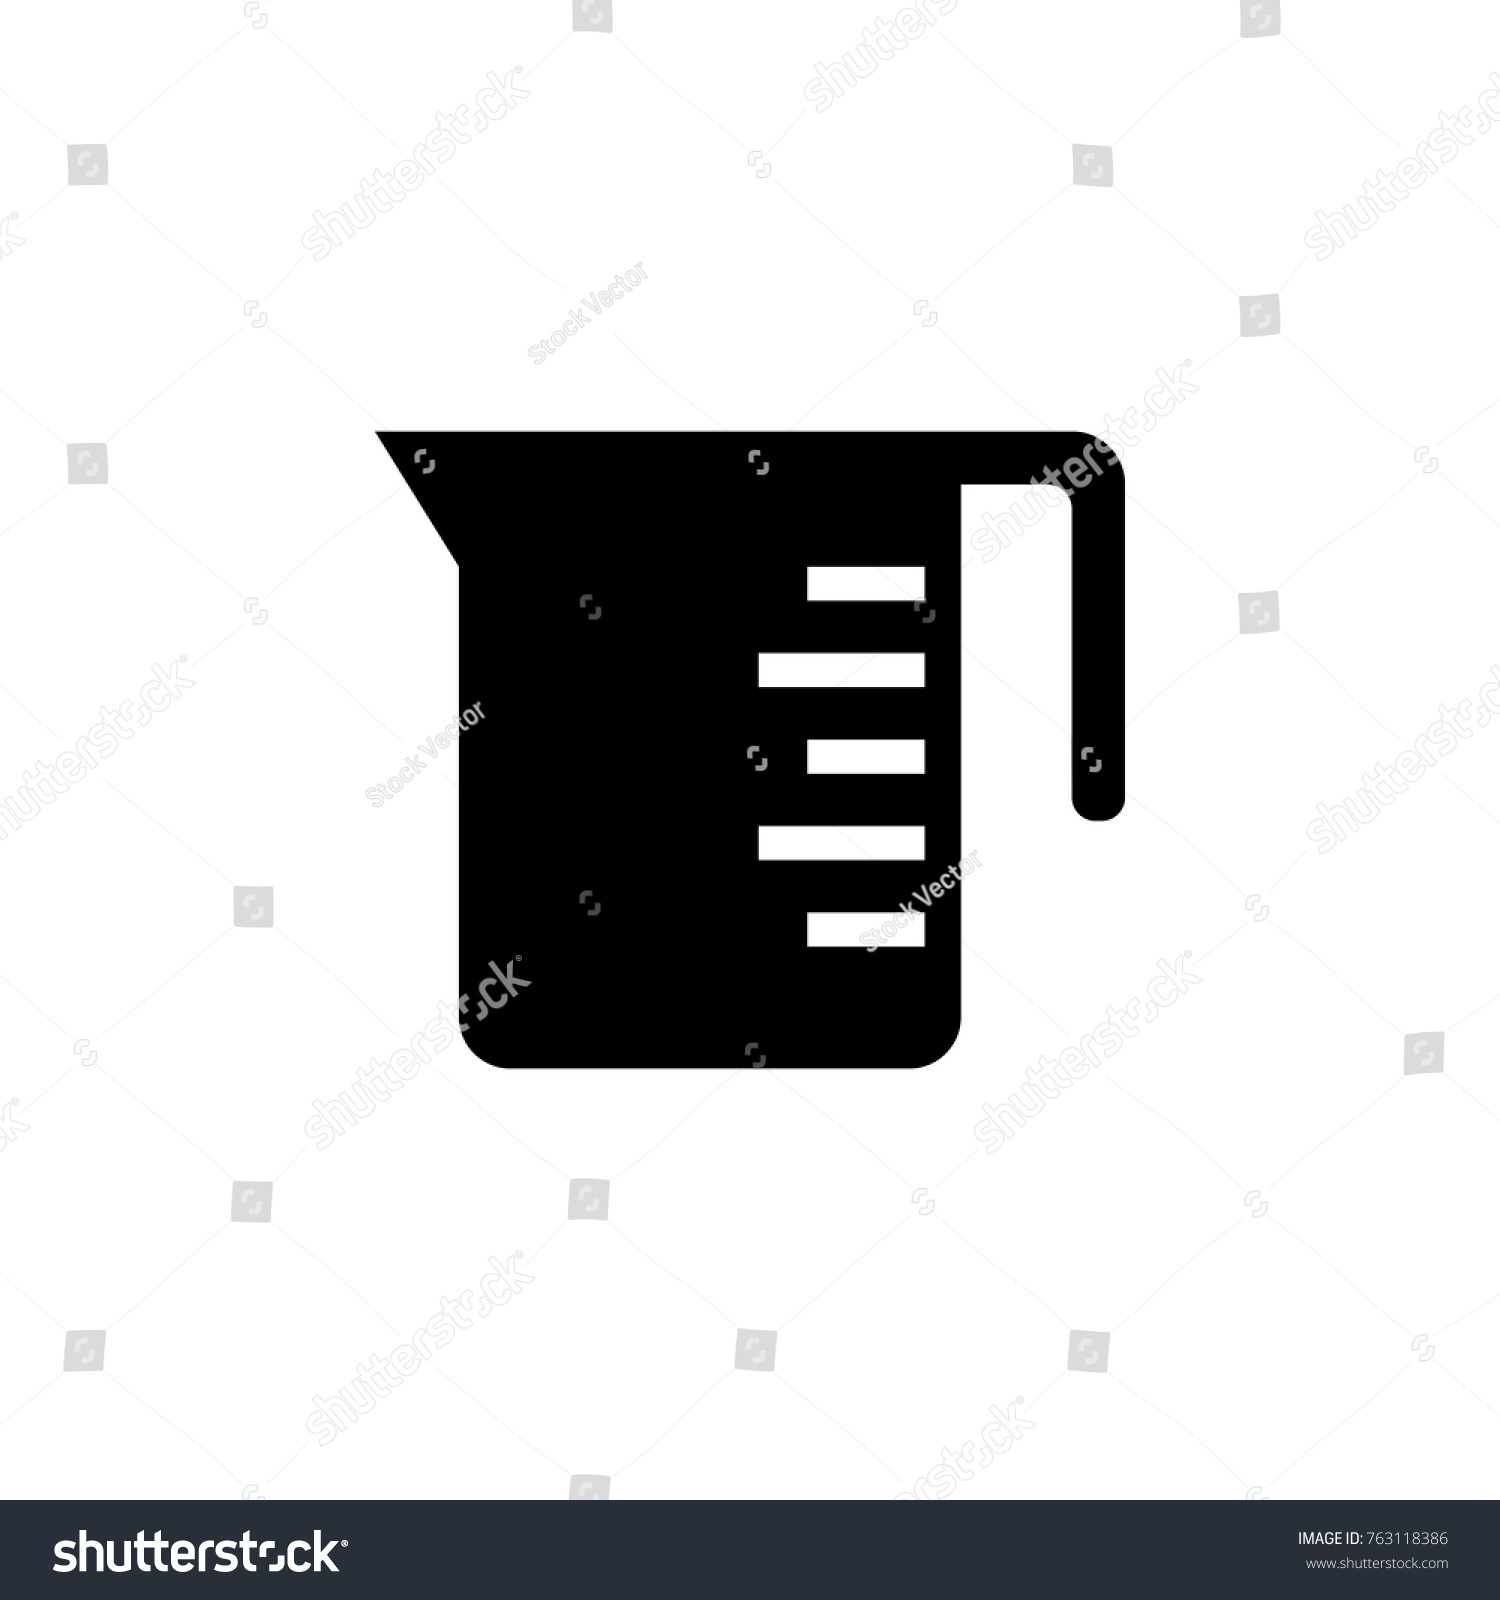 Measuring cup icon chef kitchen element stock vector 763118386 measuring cup icon chef kitchen element stock vector 763118386 shutterstock buycottarizona Choice Image